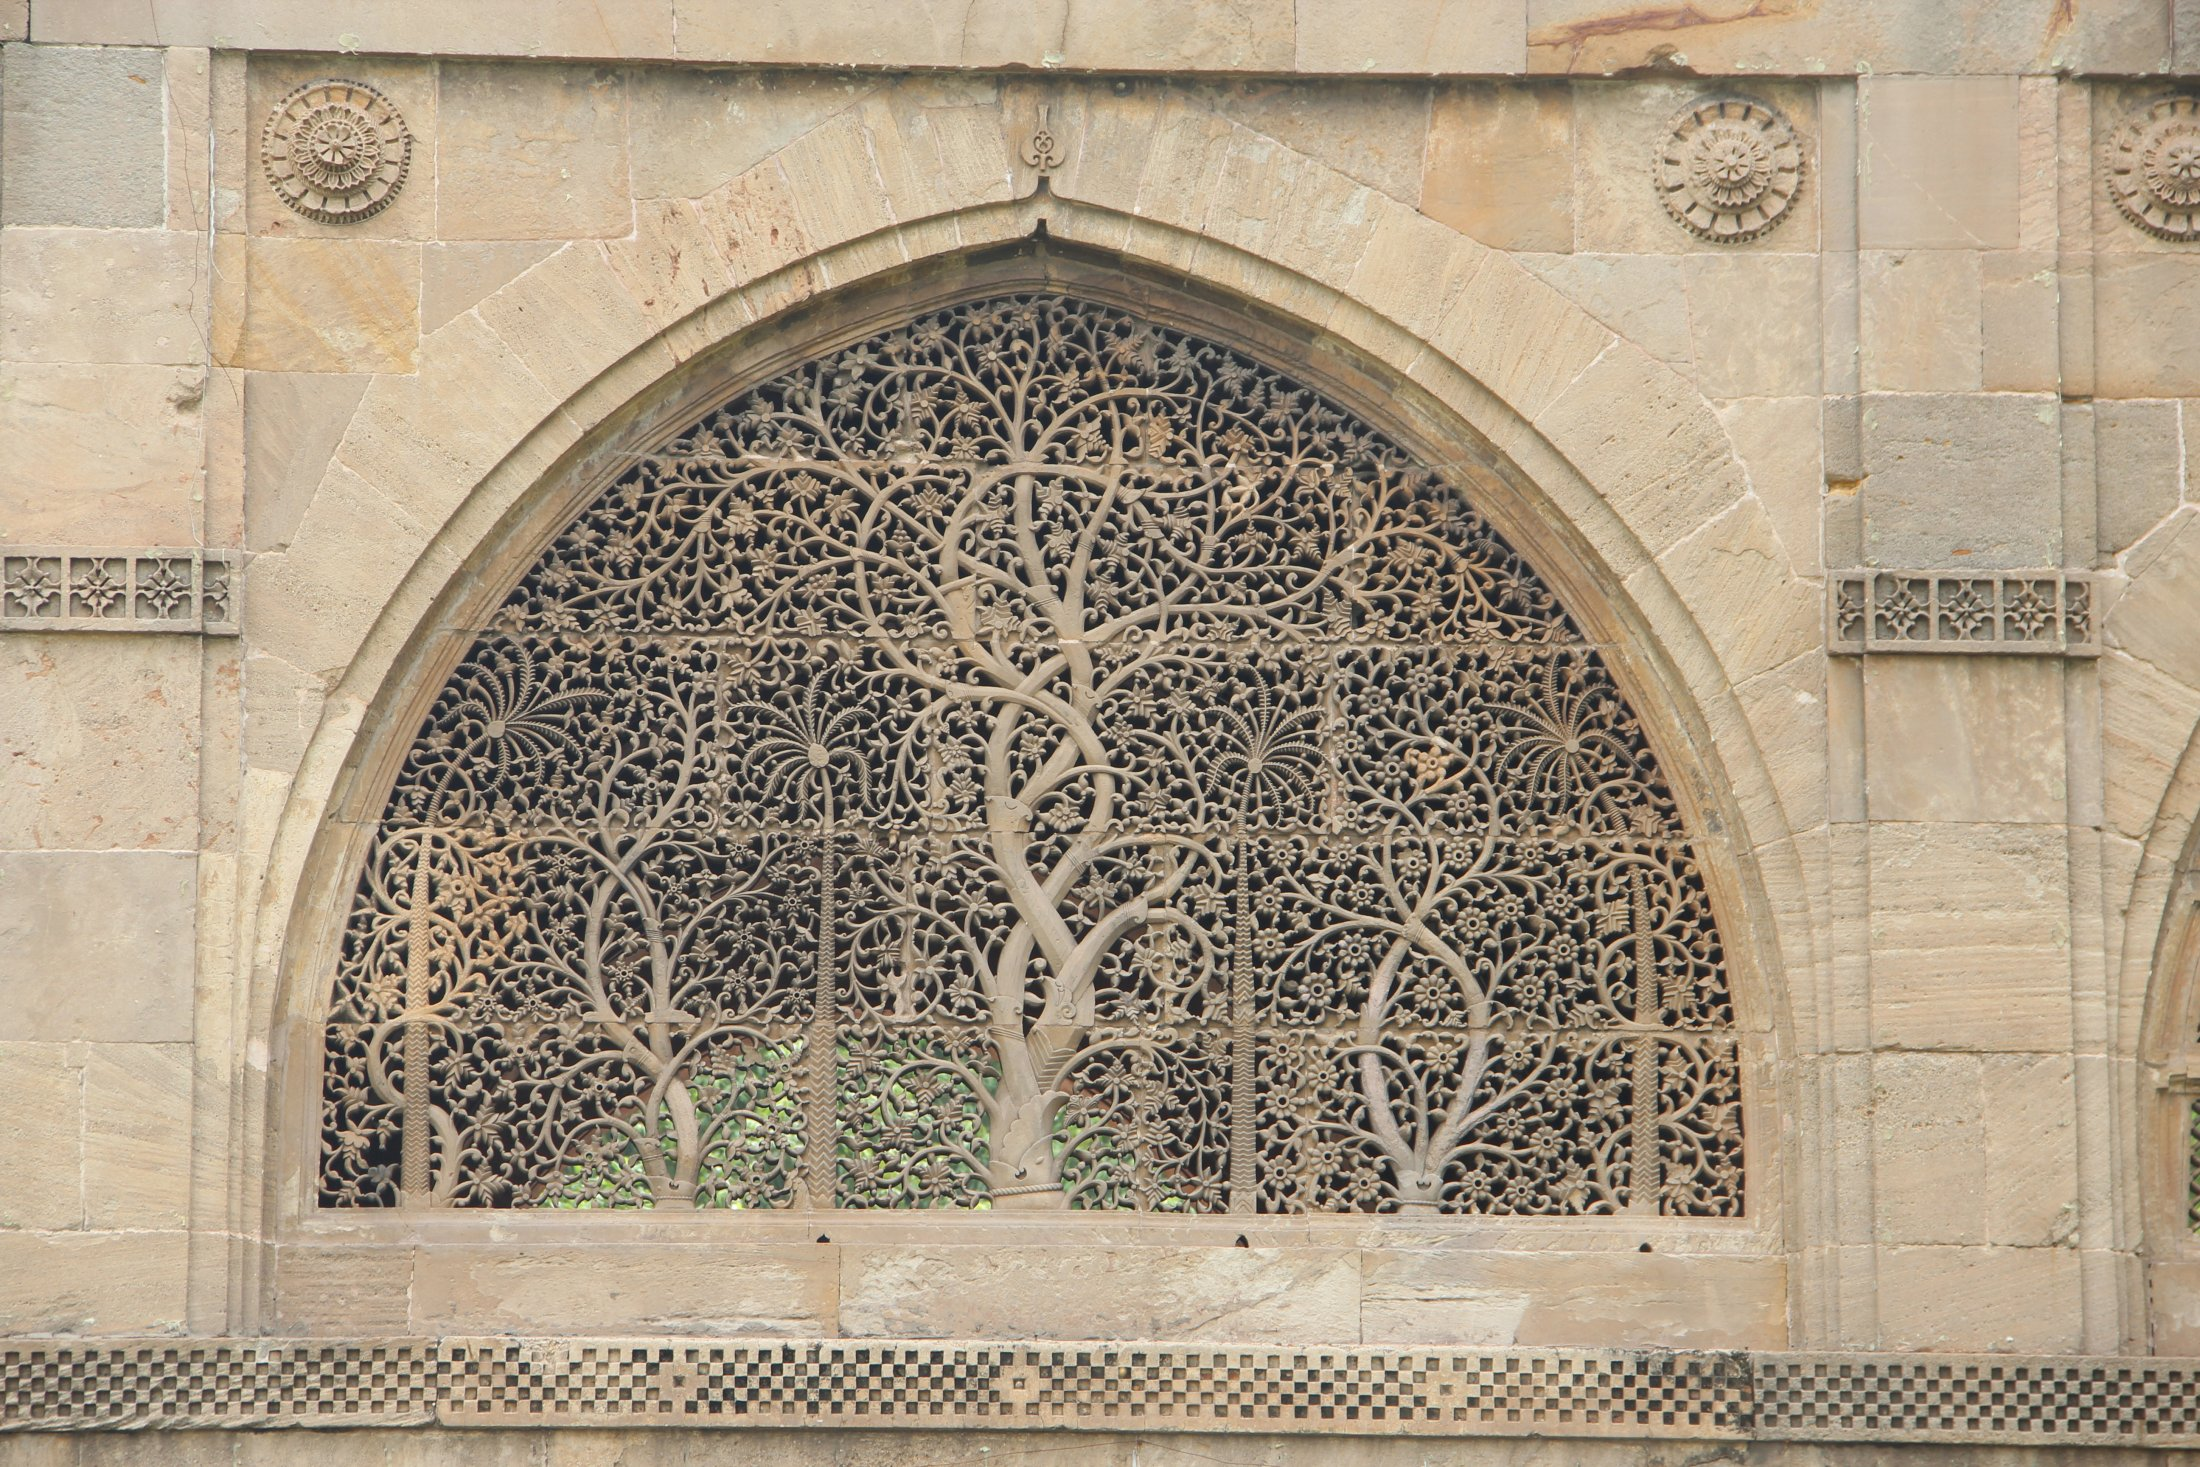 Carved Windows of the Sidi Sayed Mosque, Ahmedabad